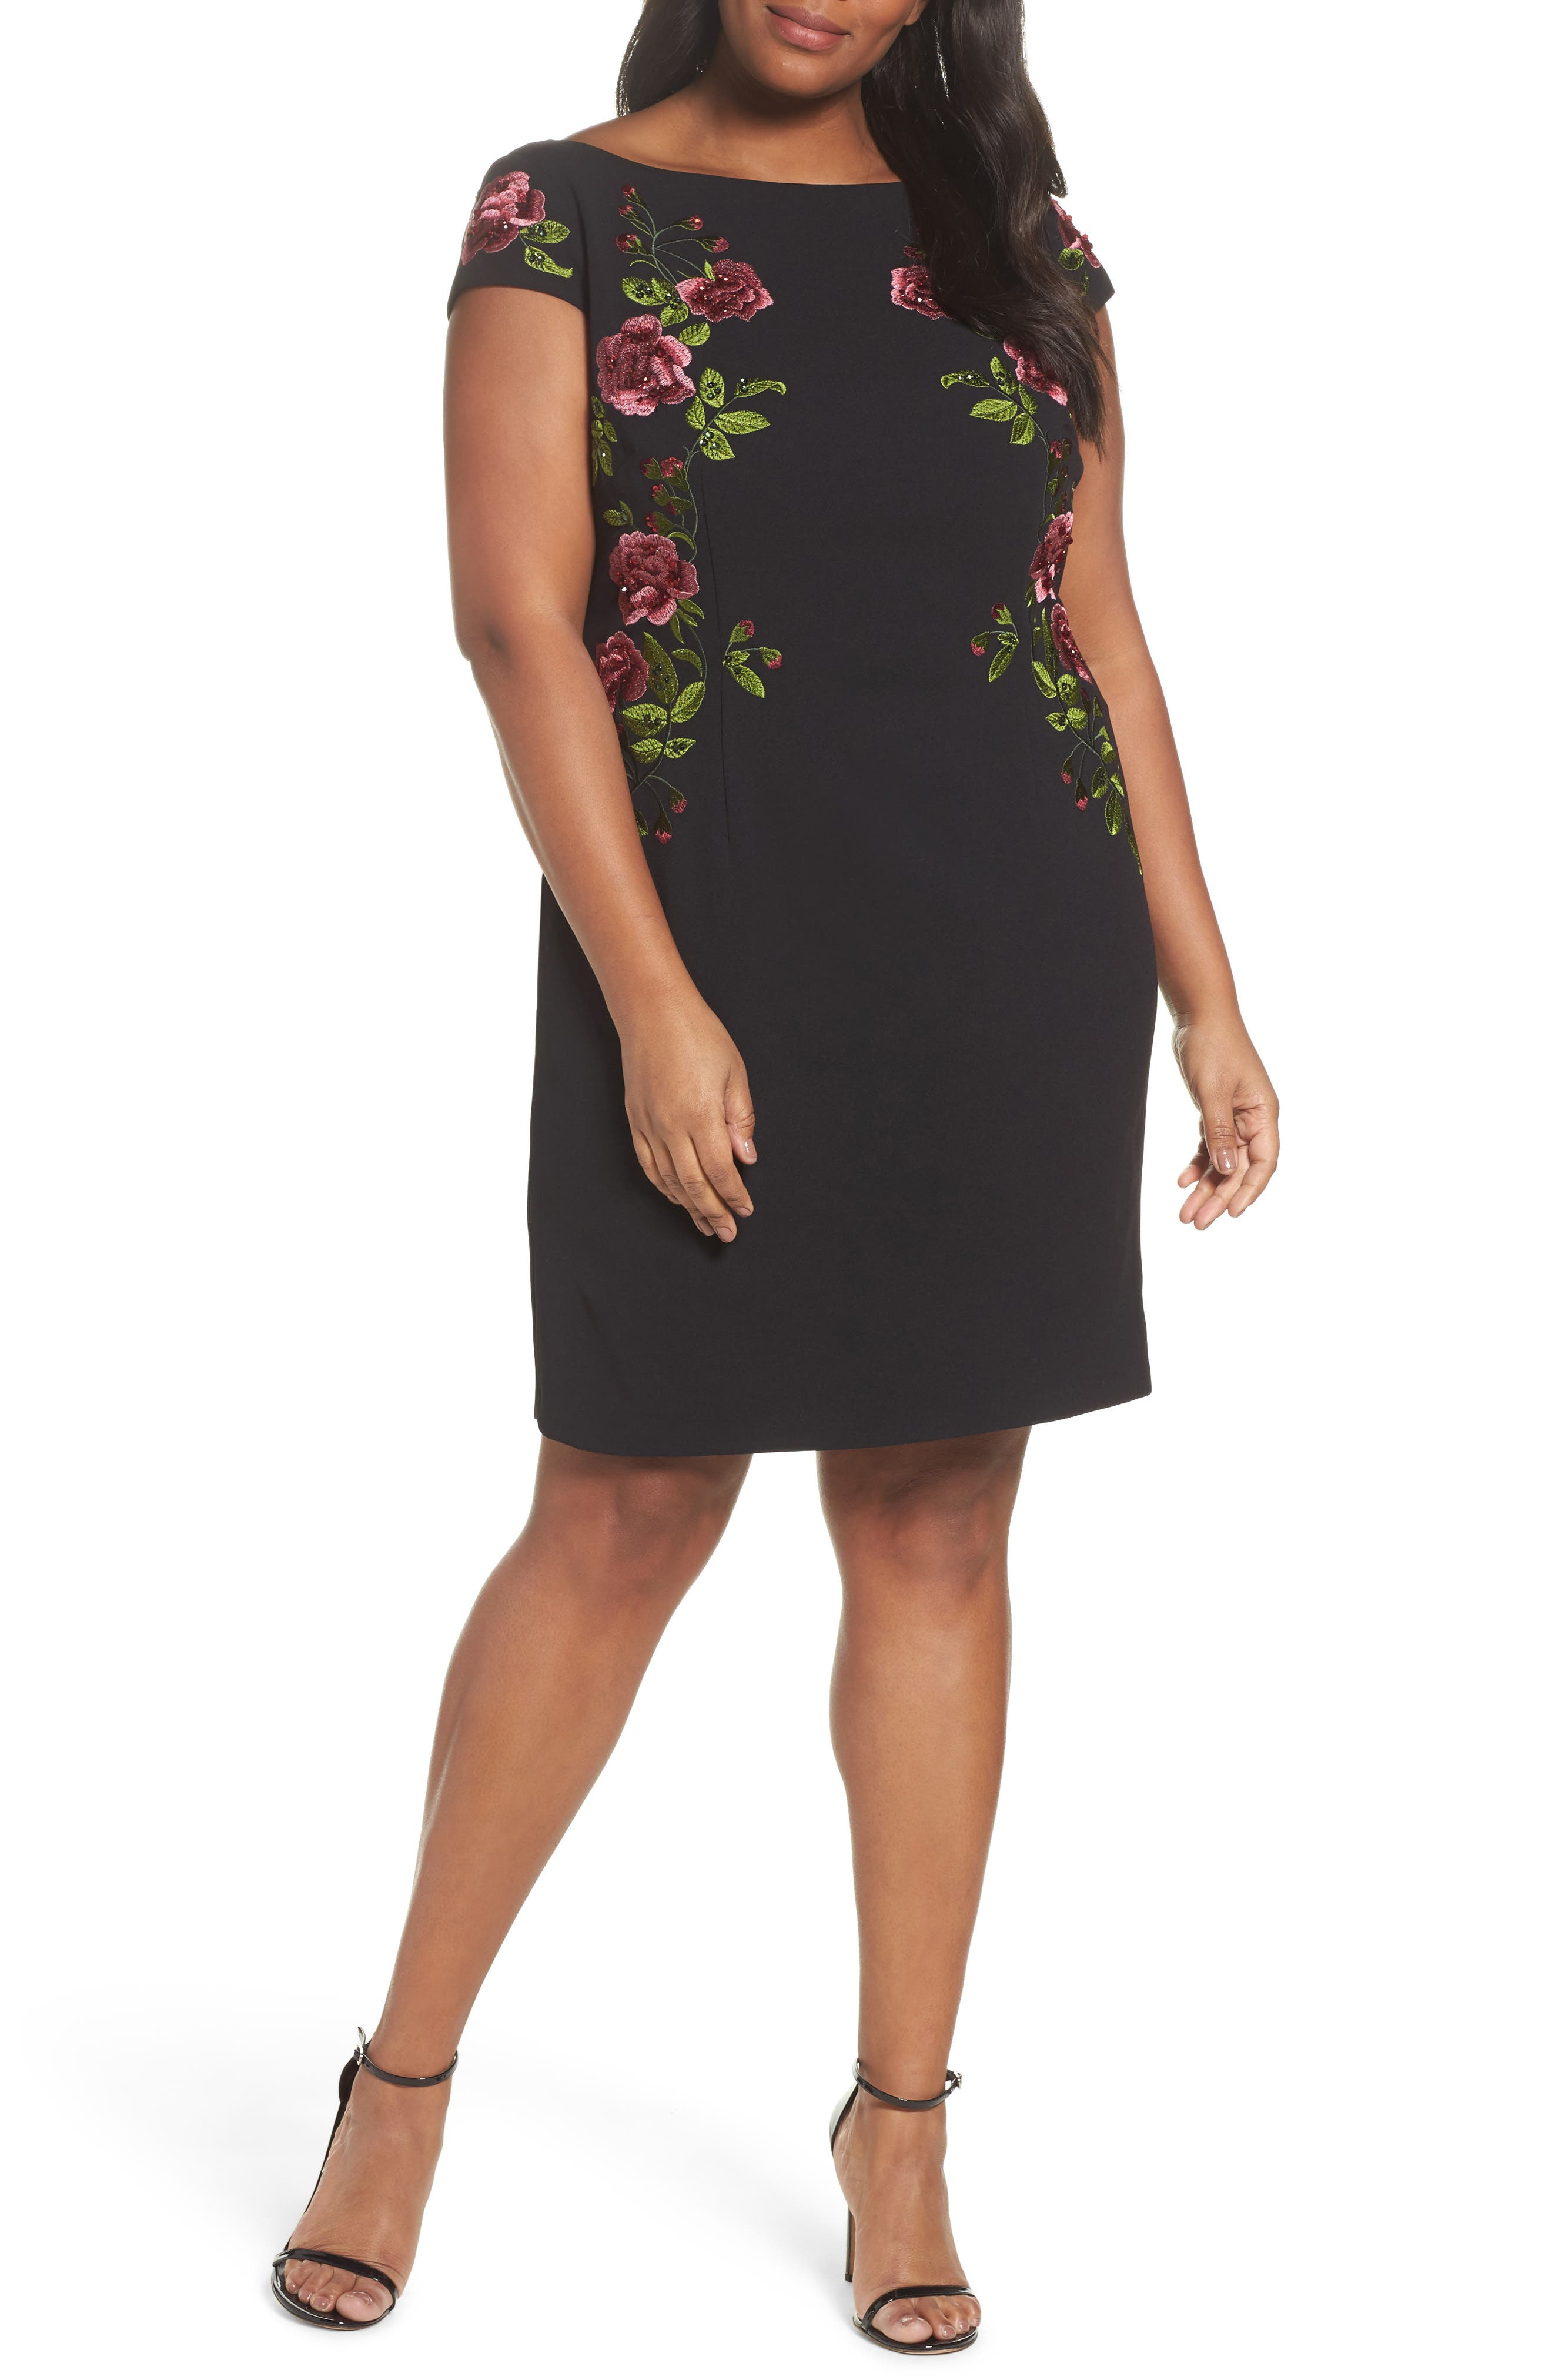 Alternate Image 1 Selected - Adrianna Papell Flower Embroidered Crepe Sheath Dress (Plus Size)